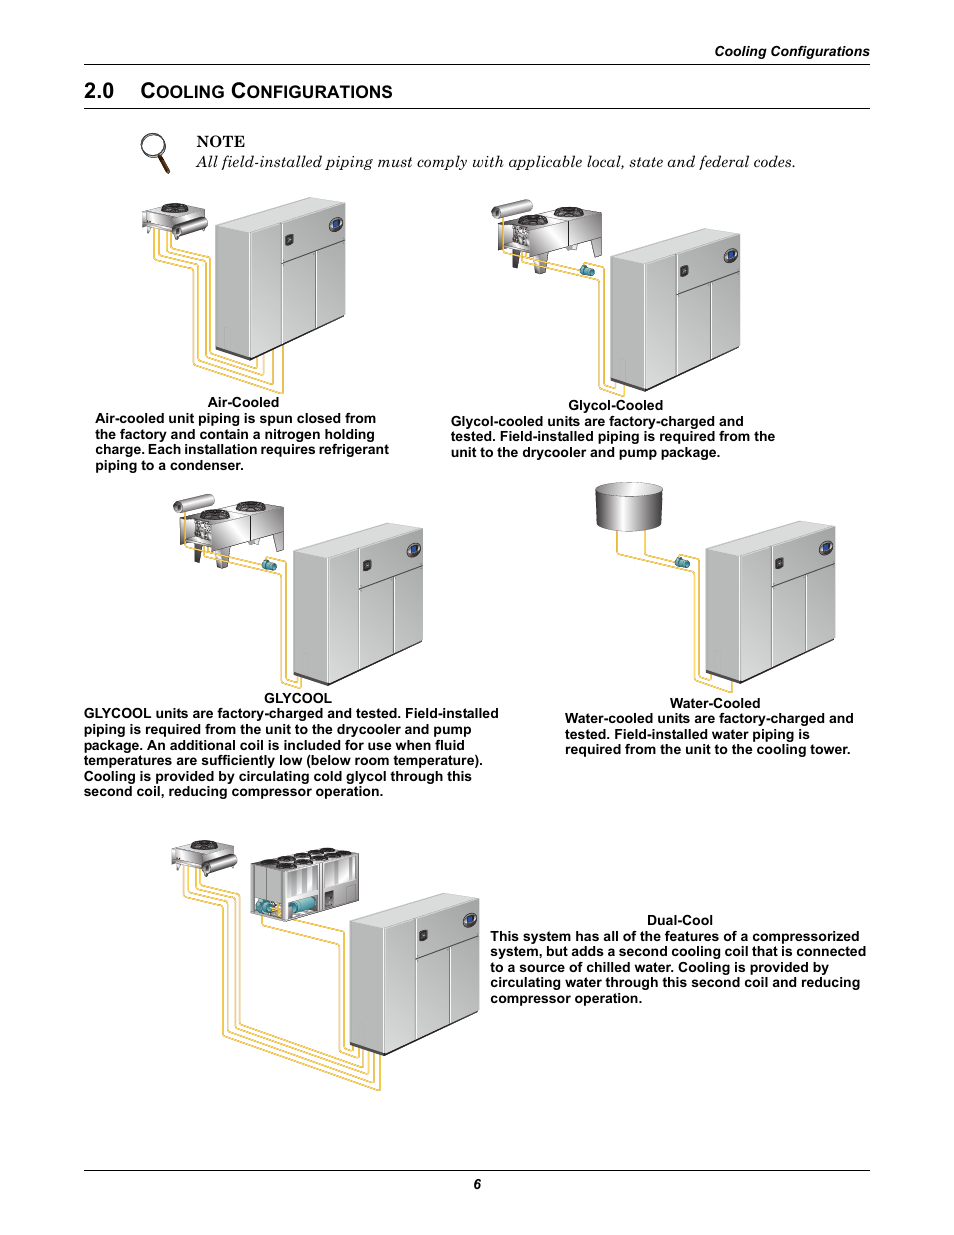 0 cooling configurations, Ooling, Onfigurations | Liebert Precision Cooling  System DS User Manual |